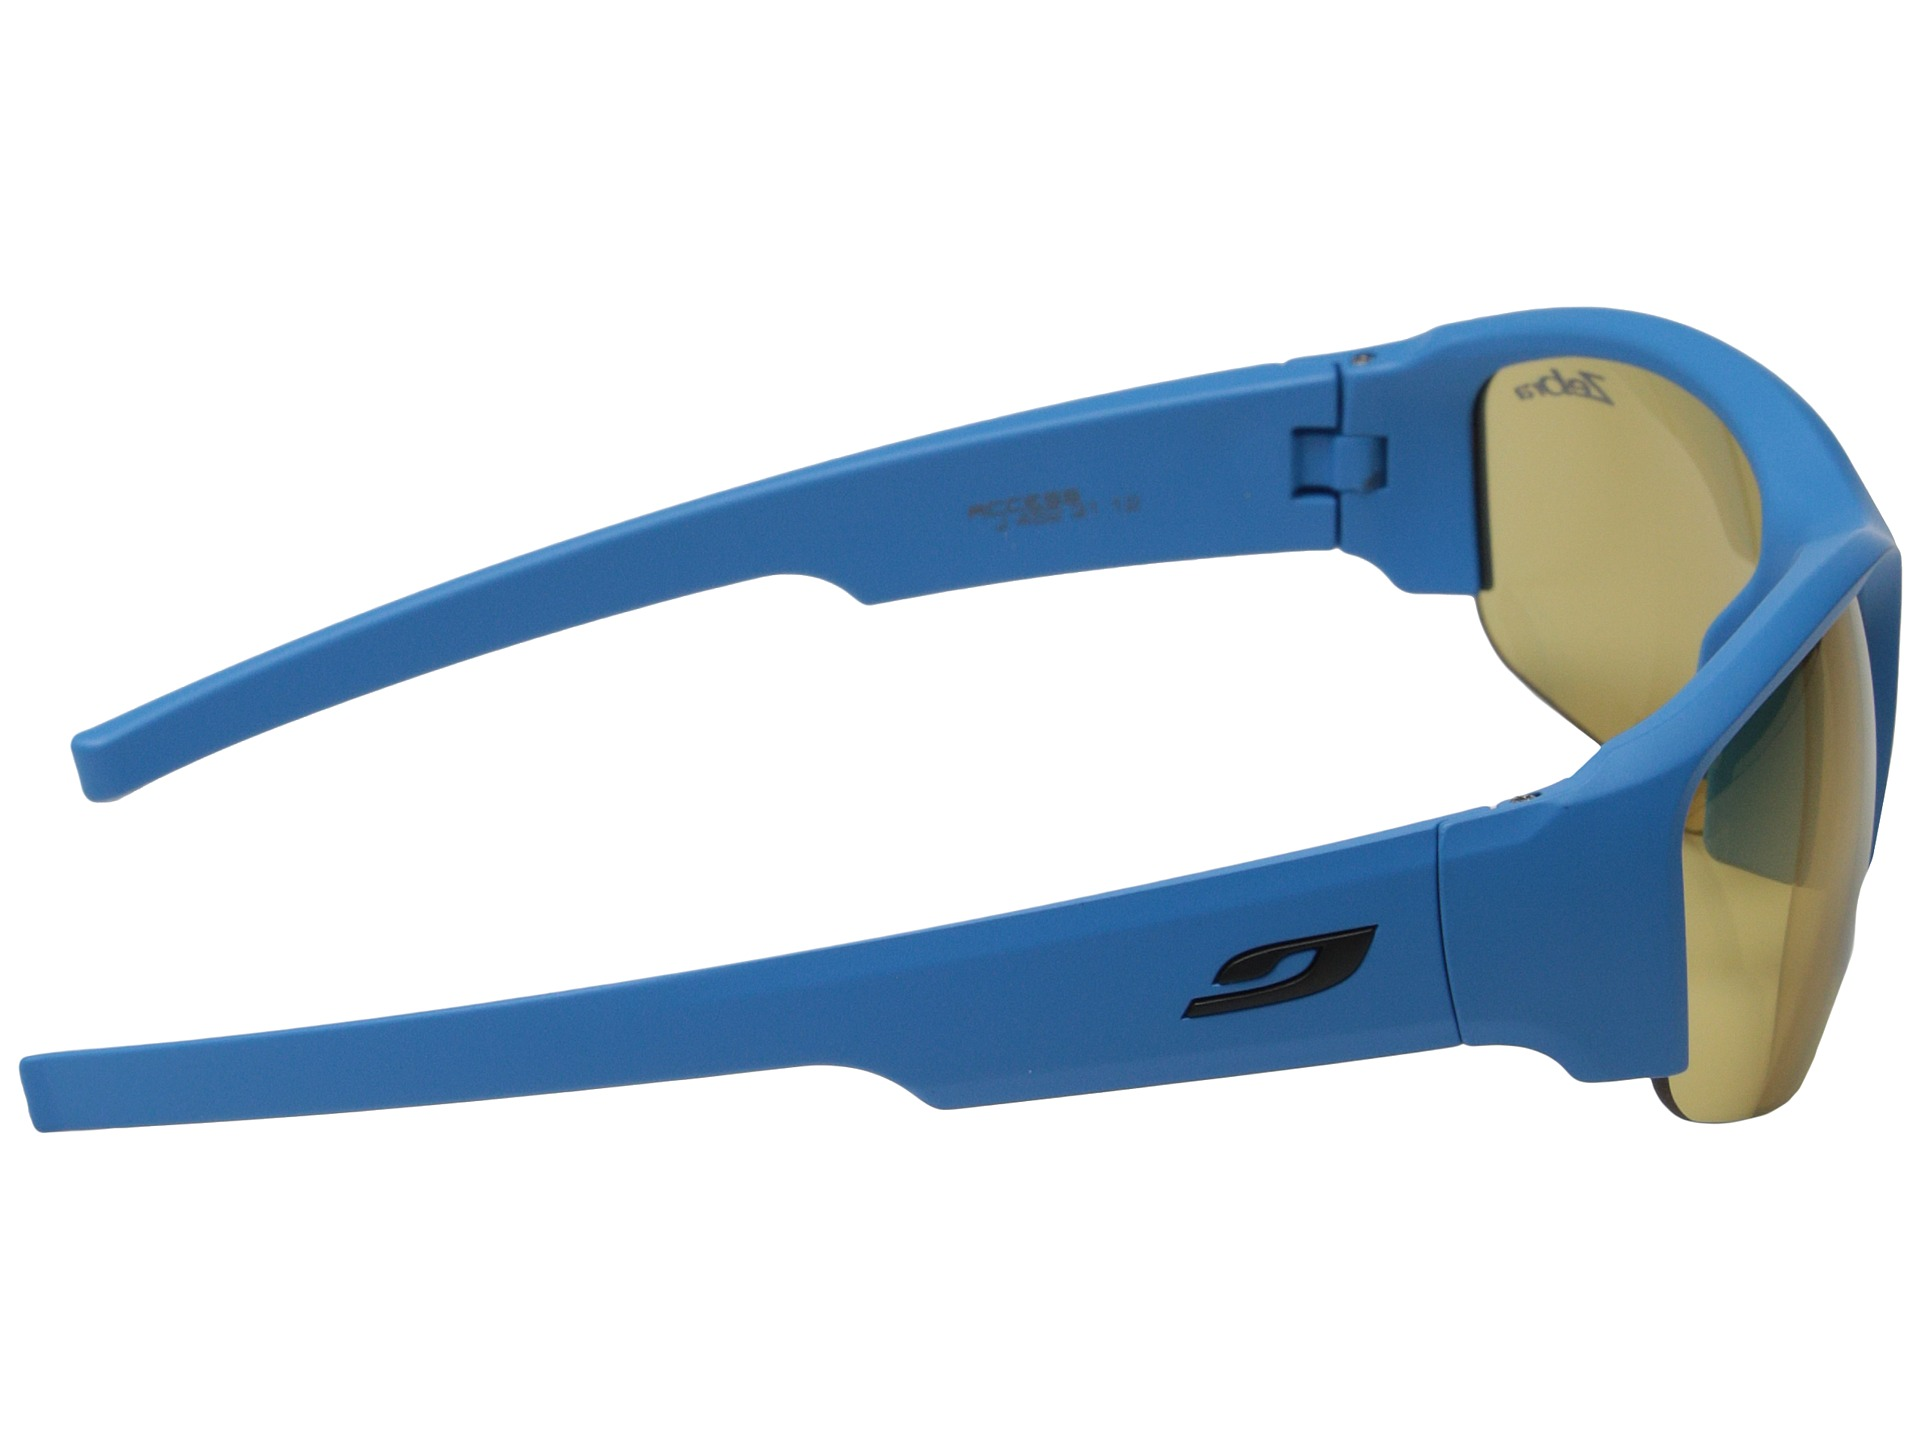 e1ab639cfe Julbo Eyewear Access Sunglasses Blue With Zebra Lenses